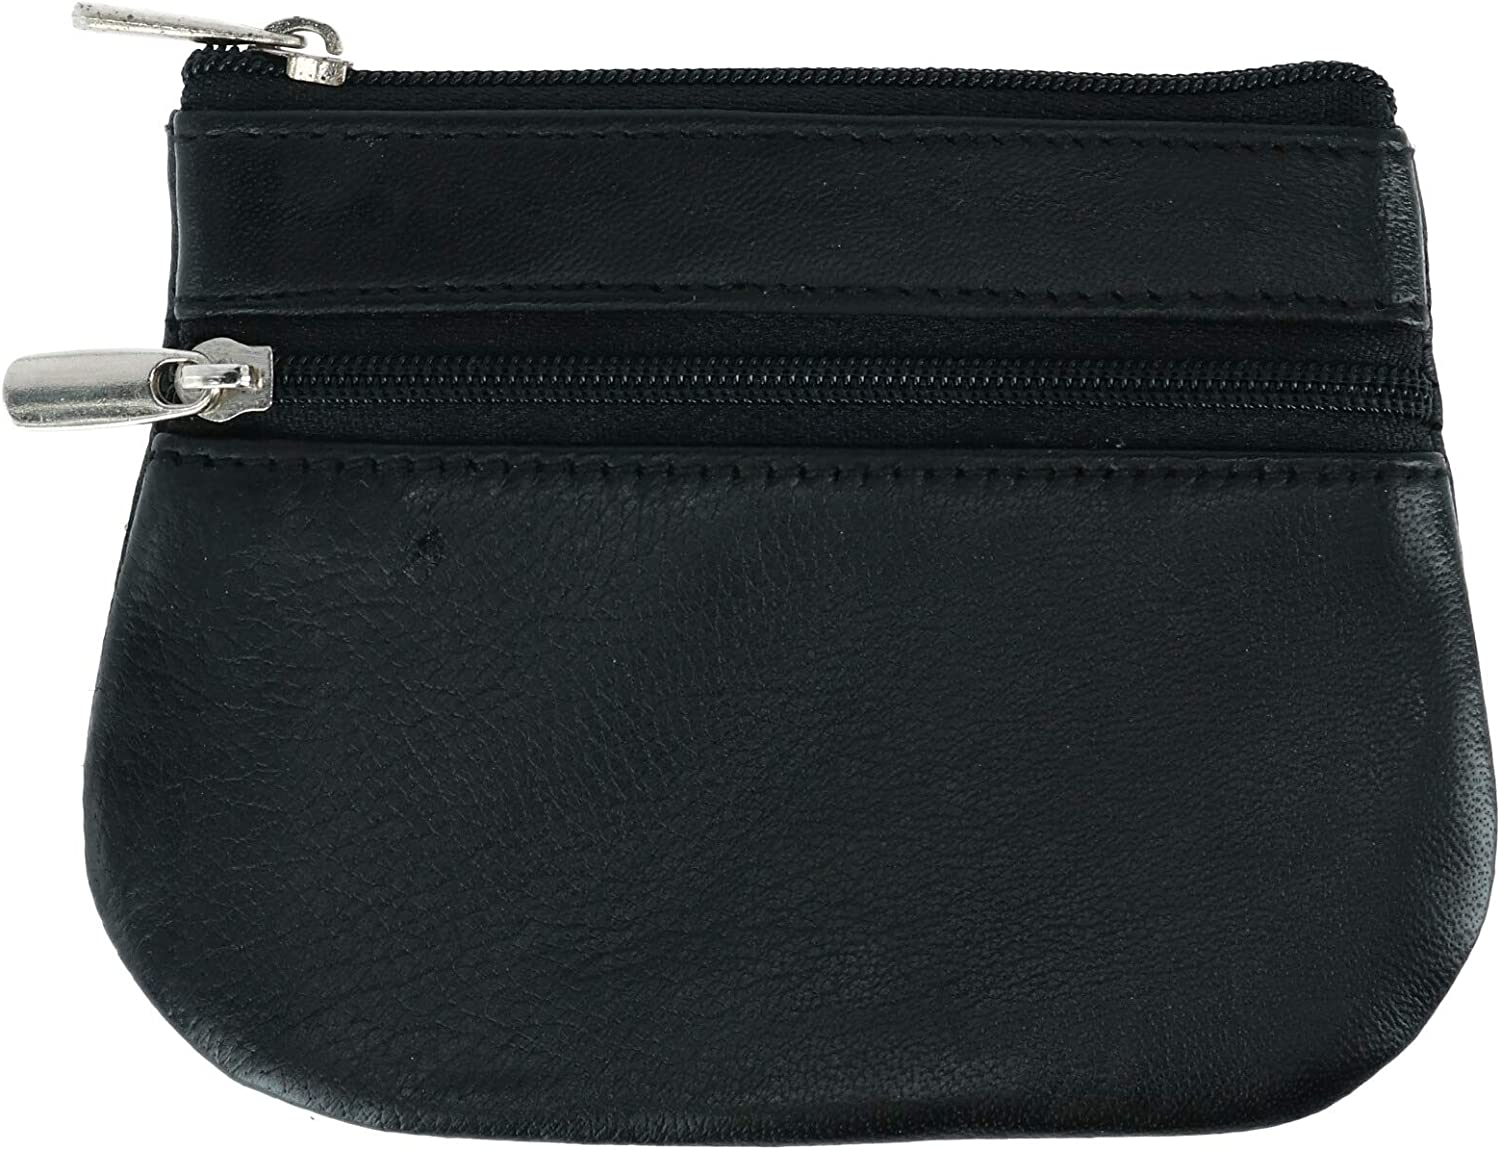 CTM Leather Zipper Coin Pouch Wallet